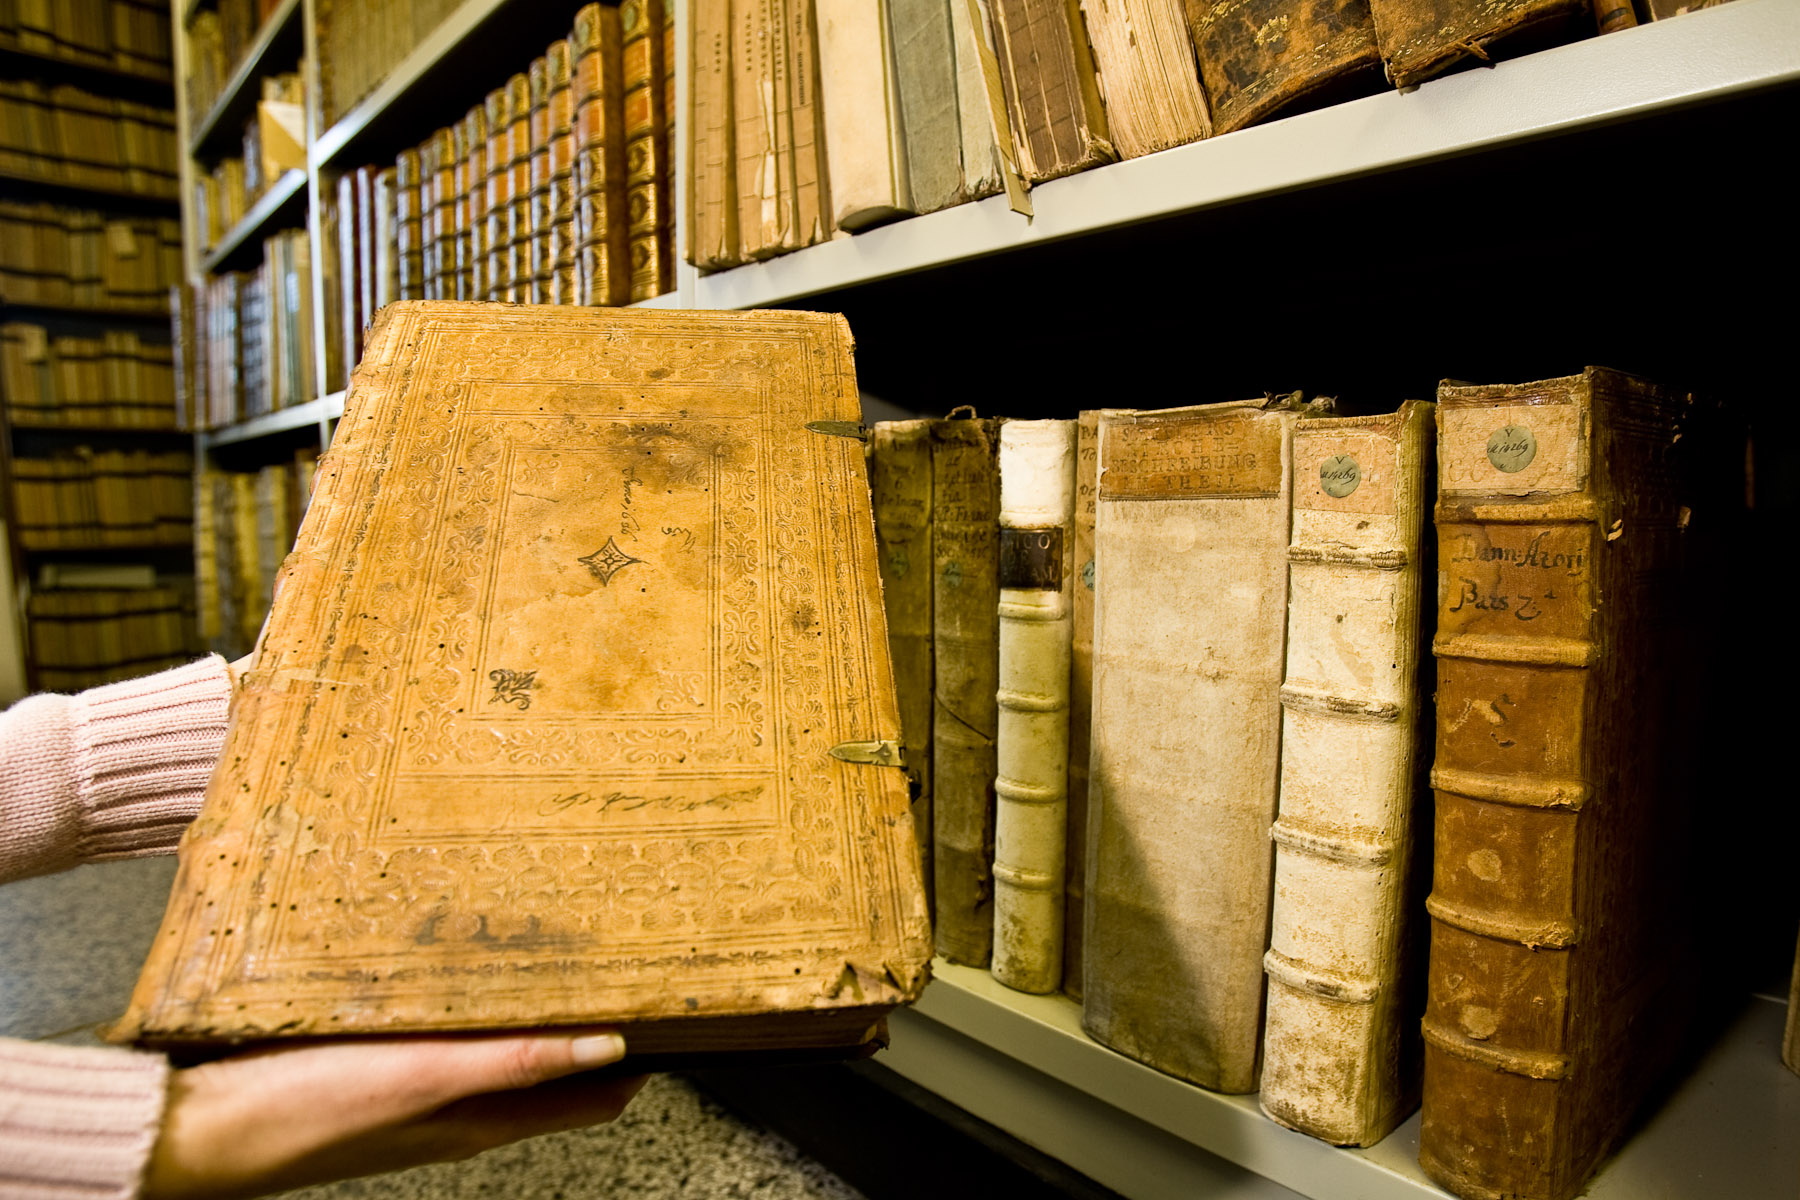 A small portion of transcripts and manuscripts from Zice Carthusian monastery was taken to Ljubljana, where it is now kept in the National University Library.